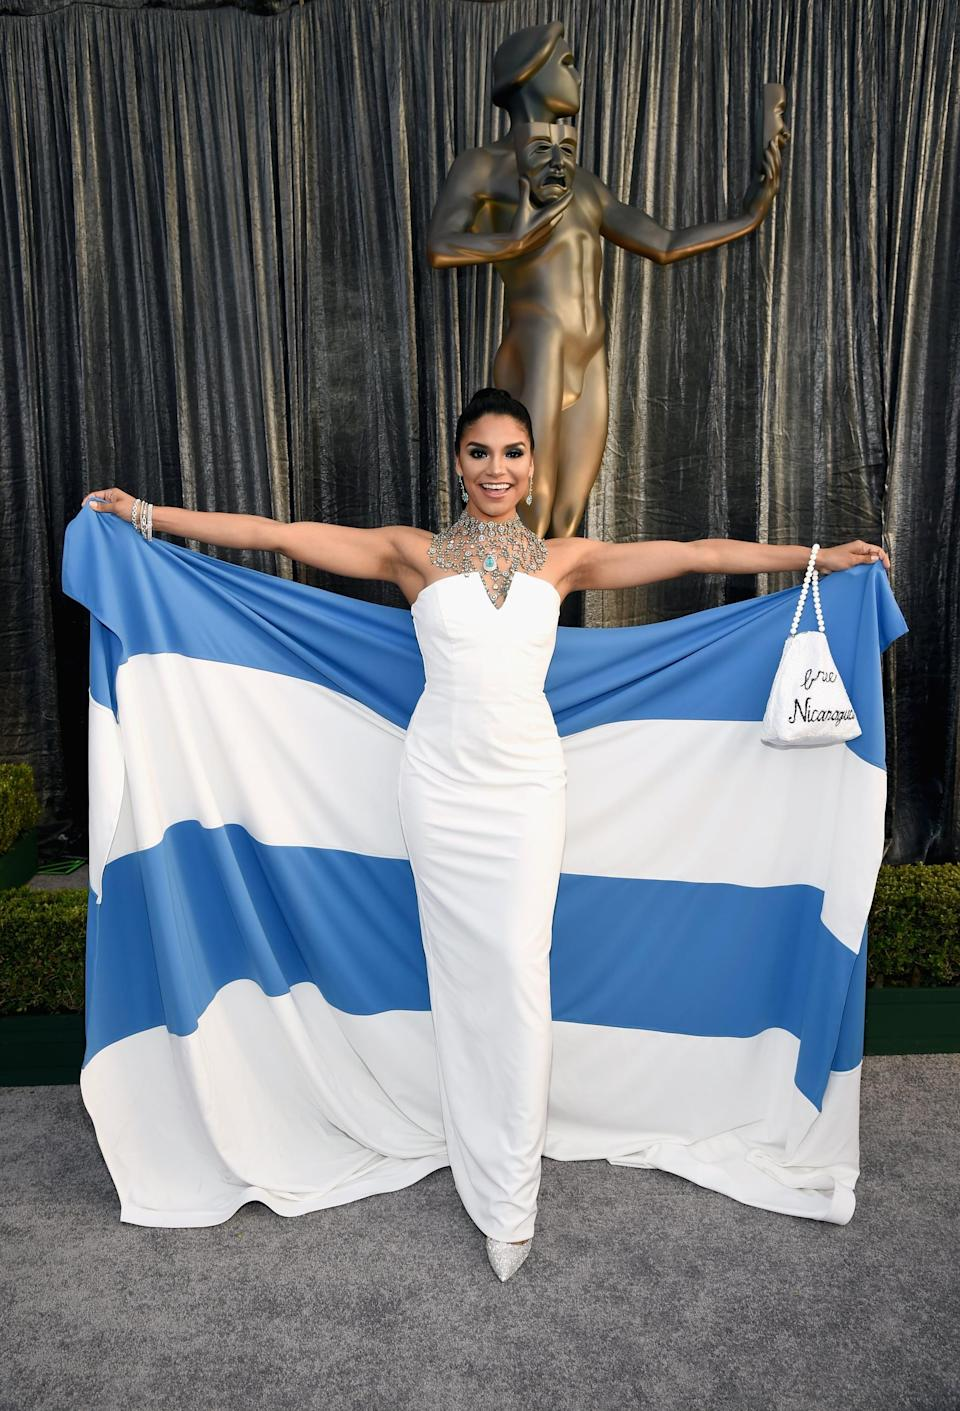 <p>Wearing a white gown with the flag of Nicaragua.</p>